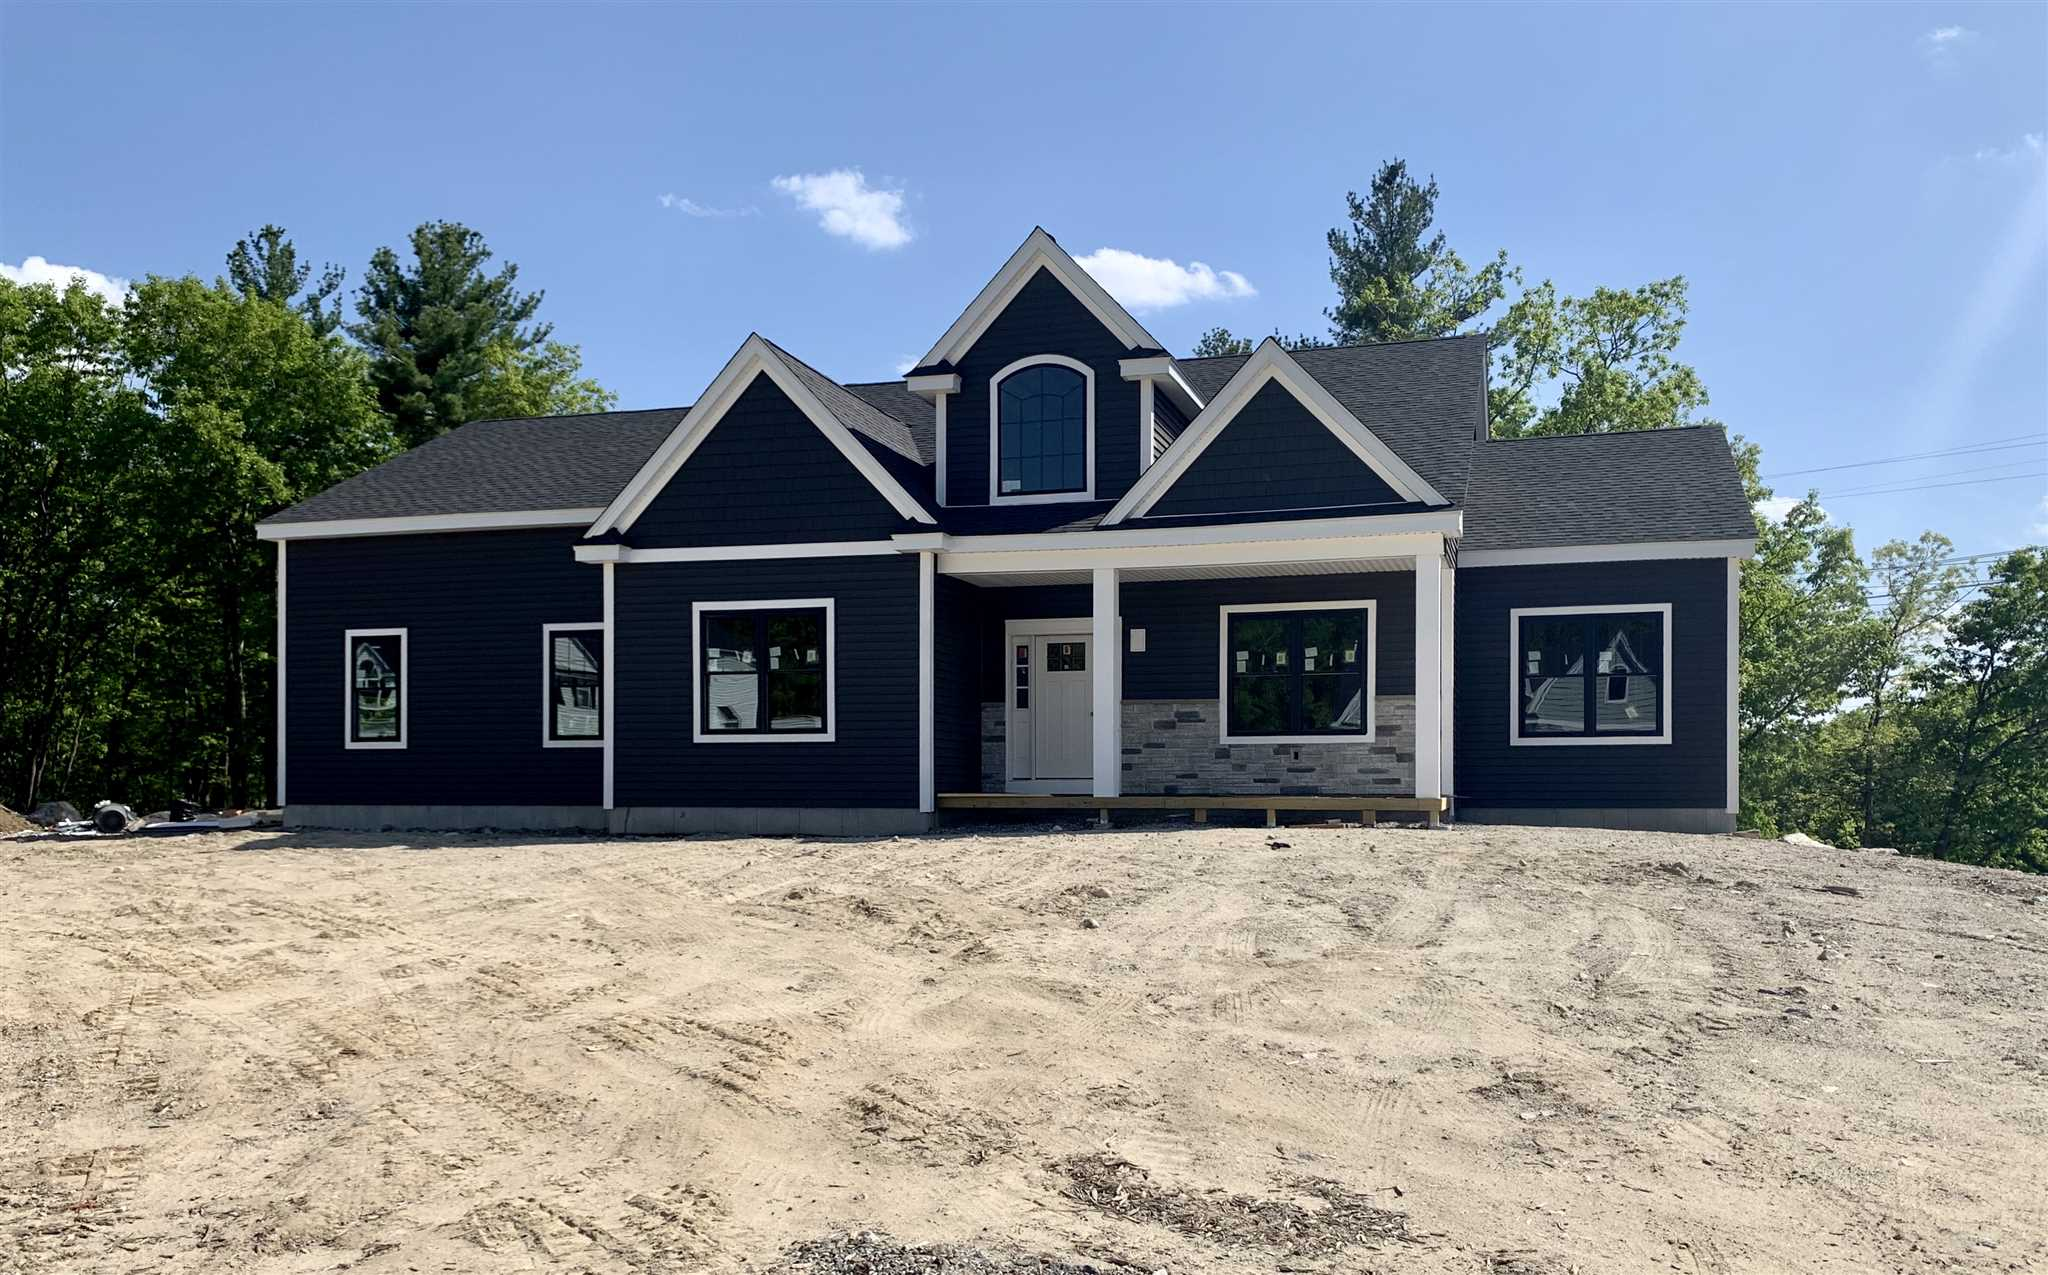 MLS 4820142: 67 Ryan Farm Road-Unit 12, Windham NH